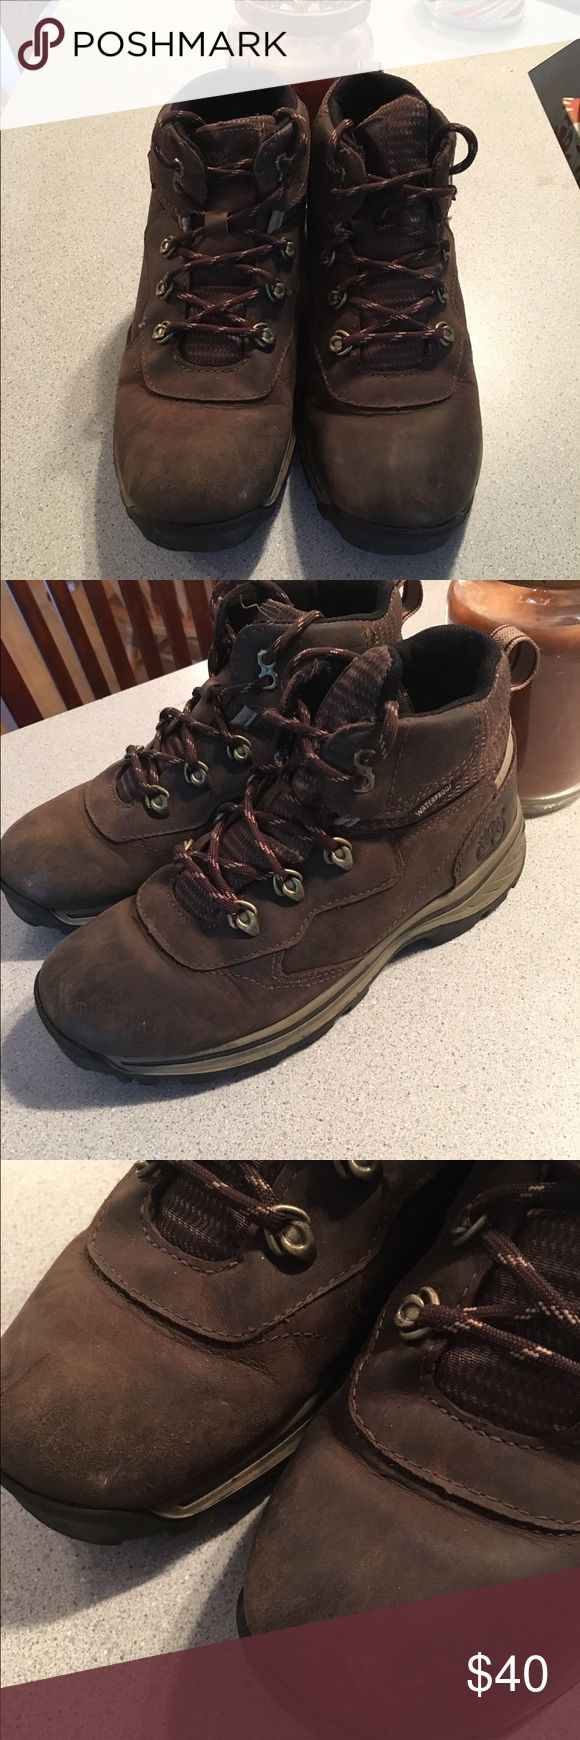 Timberland Hiking Boots Hiking boots. Great brand. These are a kids size 4. Have been worn (see pics) but still in good condition. Timberland Shoes Boots